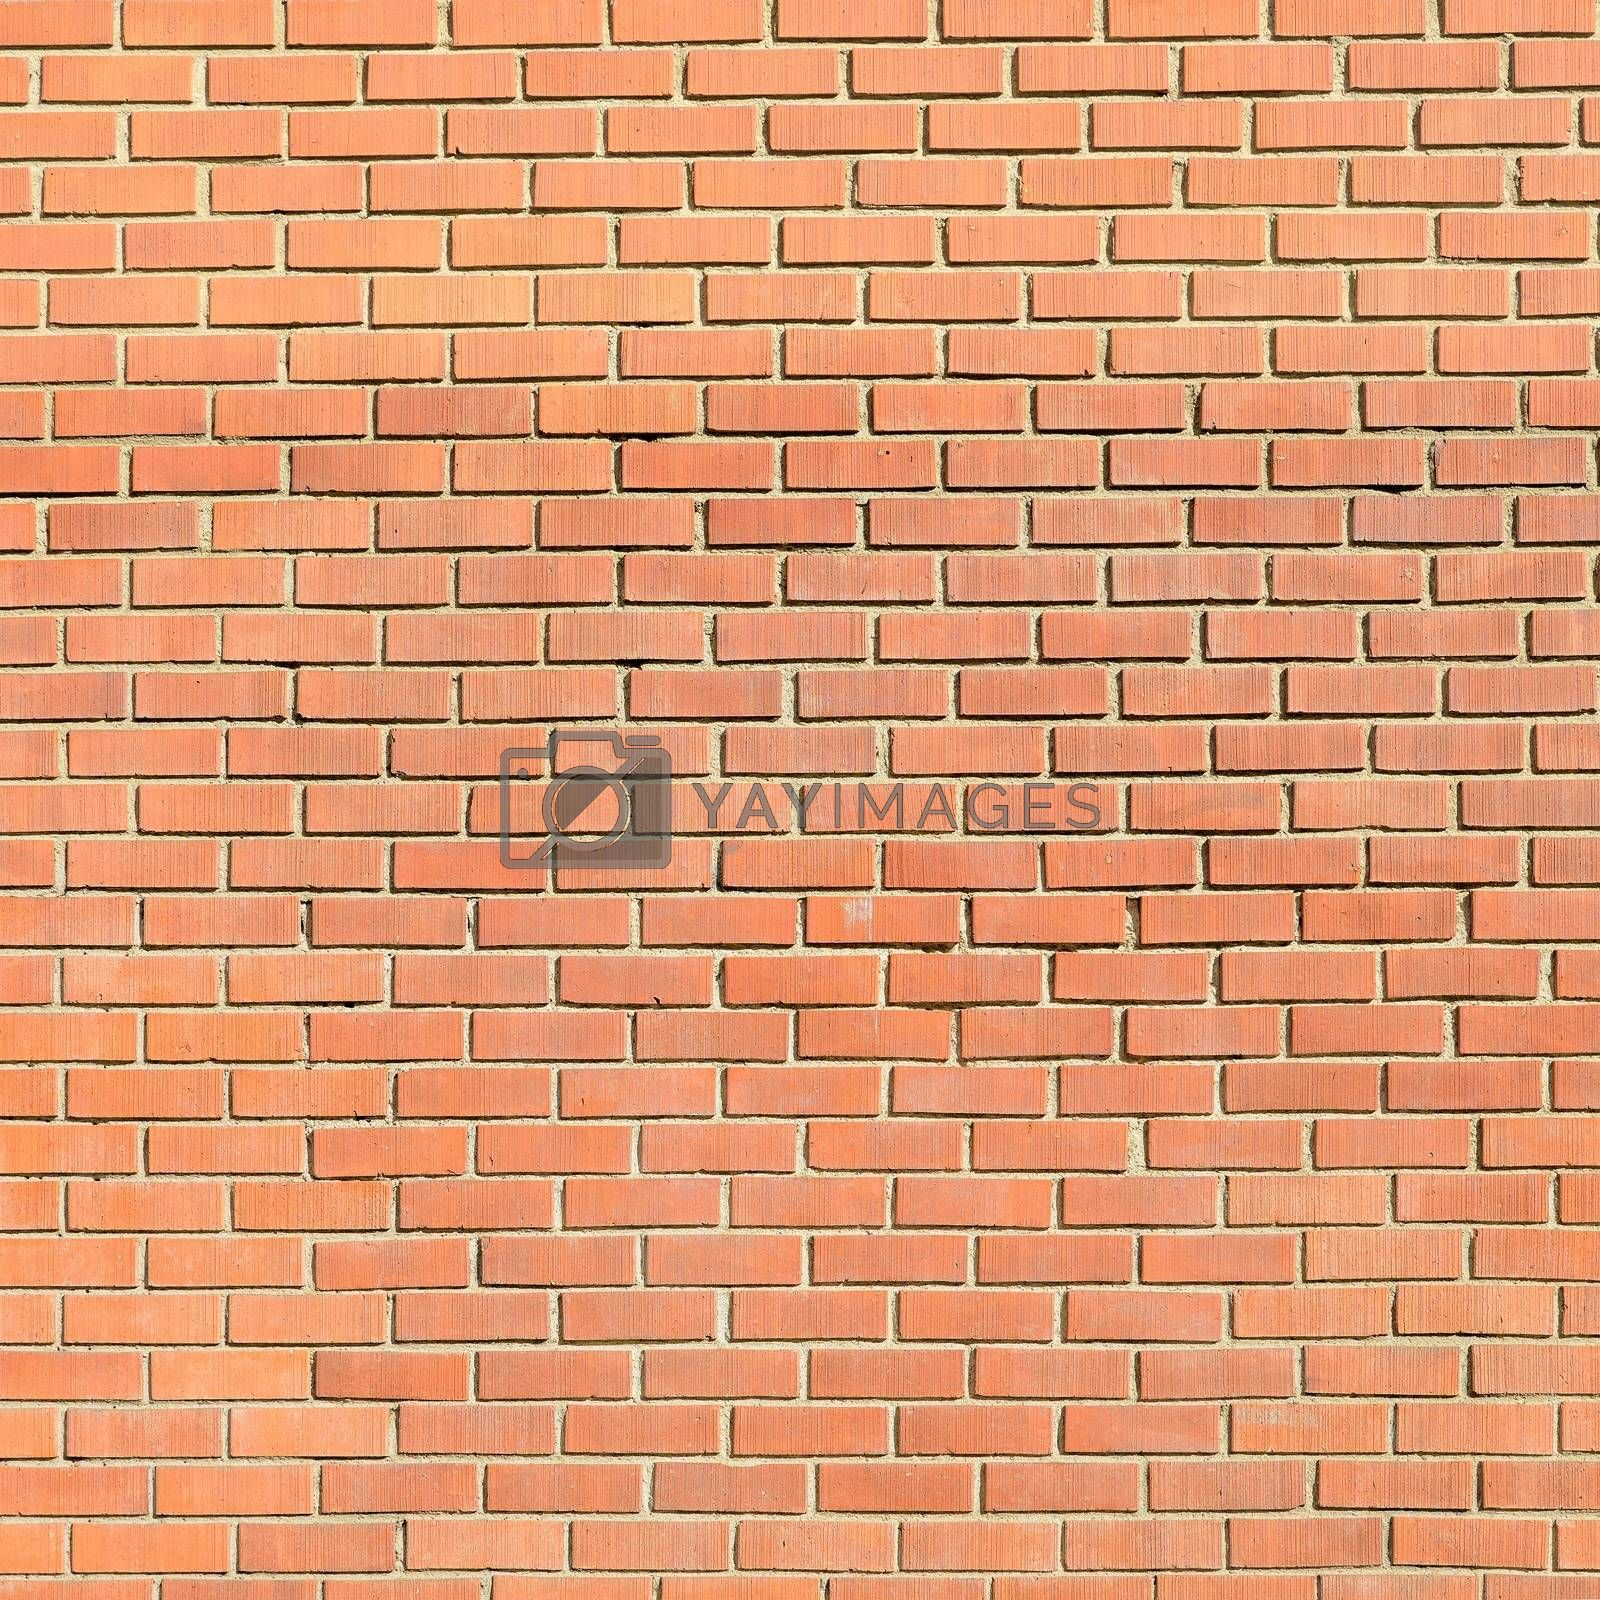 Brick wall for backgrounds